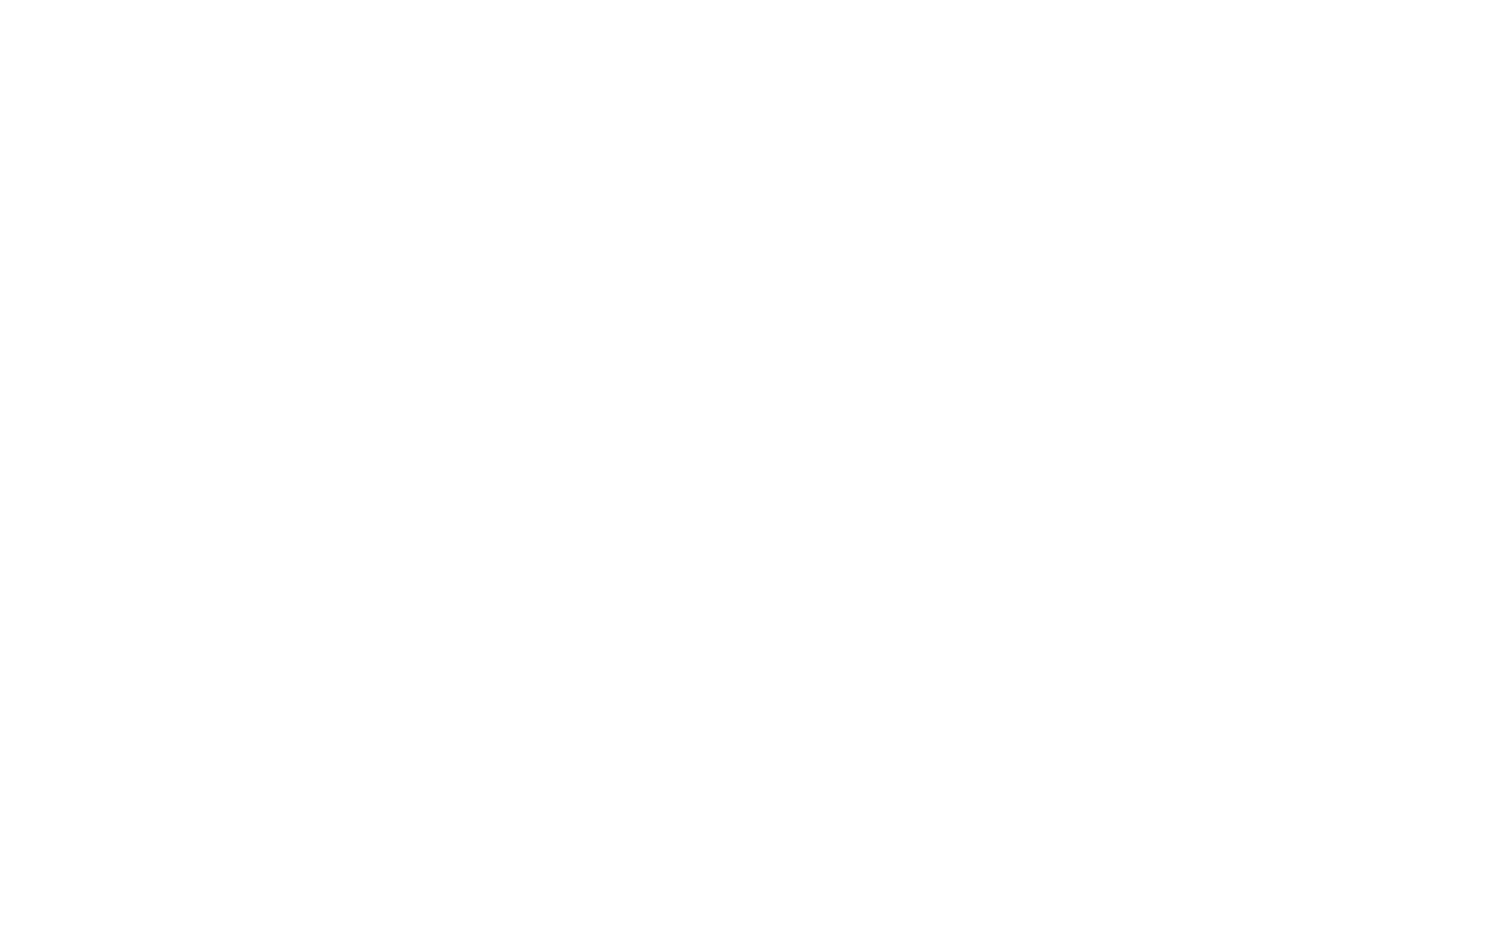 Beacon Hill Yoga